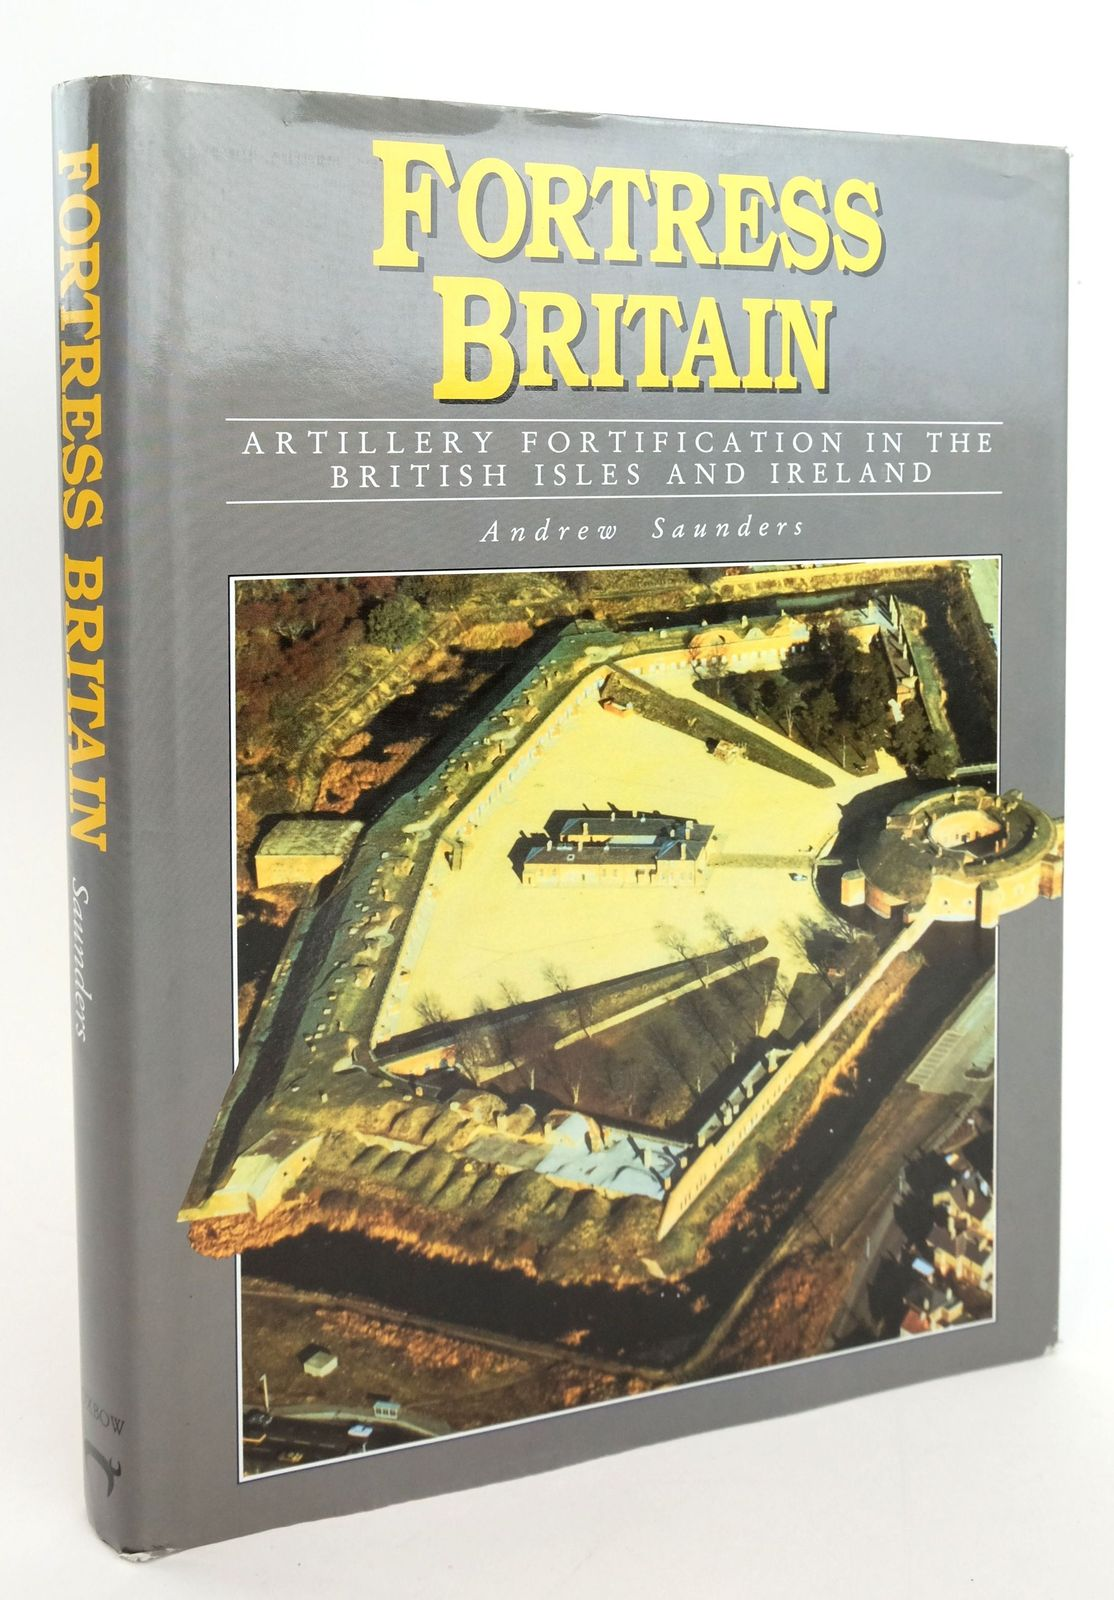 Photo of FORTRESS BRITAIN: ARTILLERY FORTIFICATION IN THE BRITISH ISLES AND IRELAND written by Saunders, Andrew published by Beaufort Publishing Ltd (STOCK CODE: 1820054)  for sale by Stella & Rose's Books